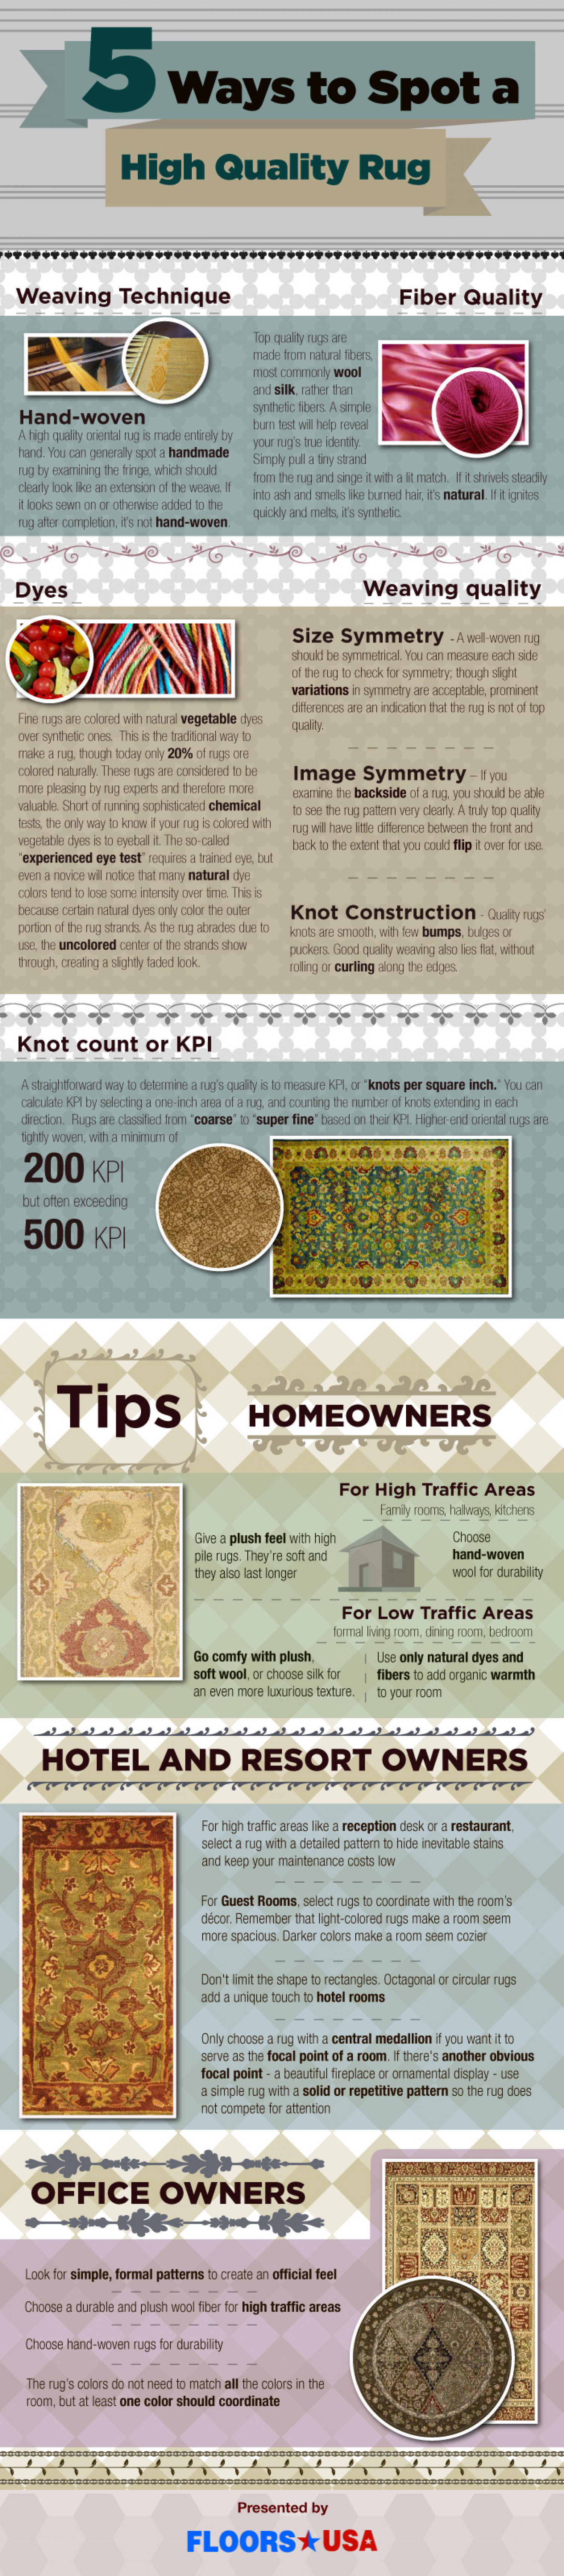 5 Ways to Spot a high quality rug Infographic